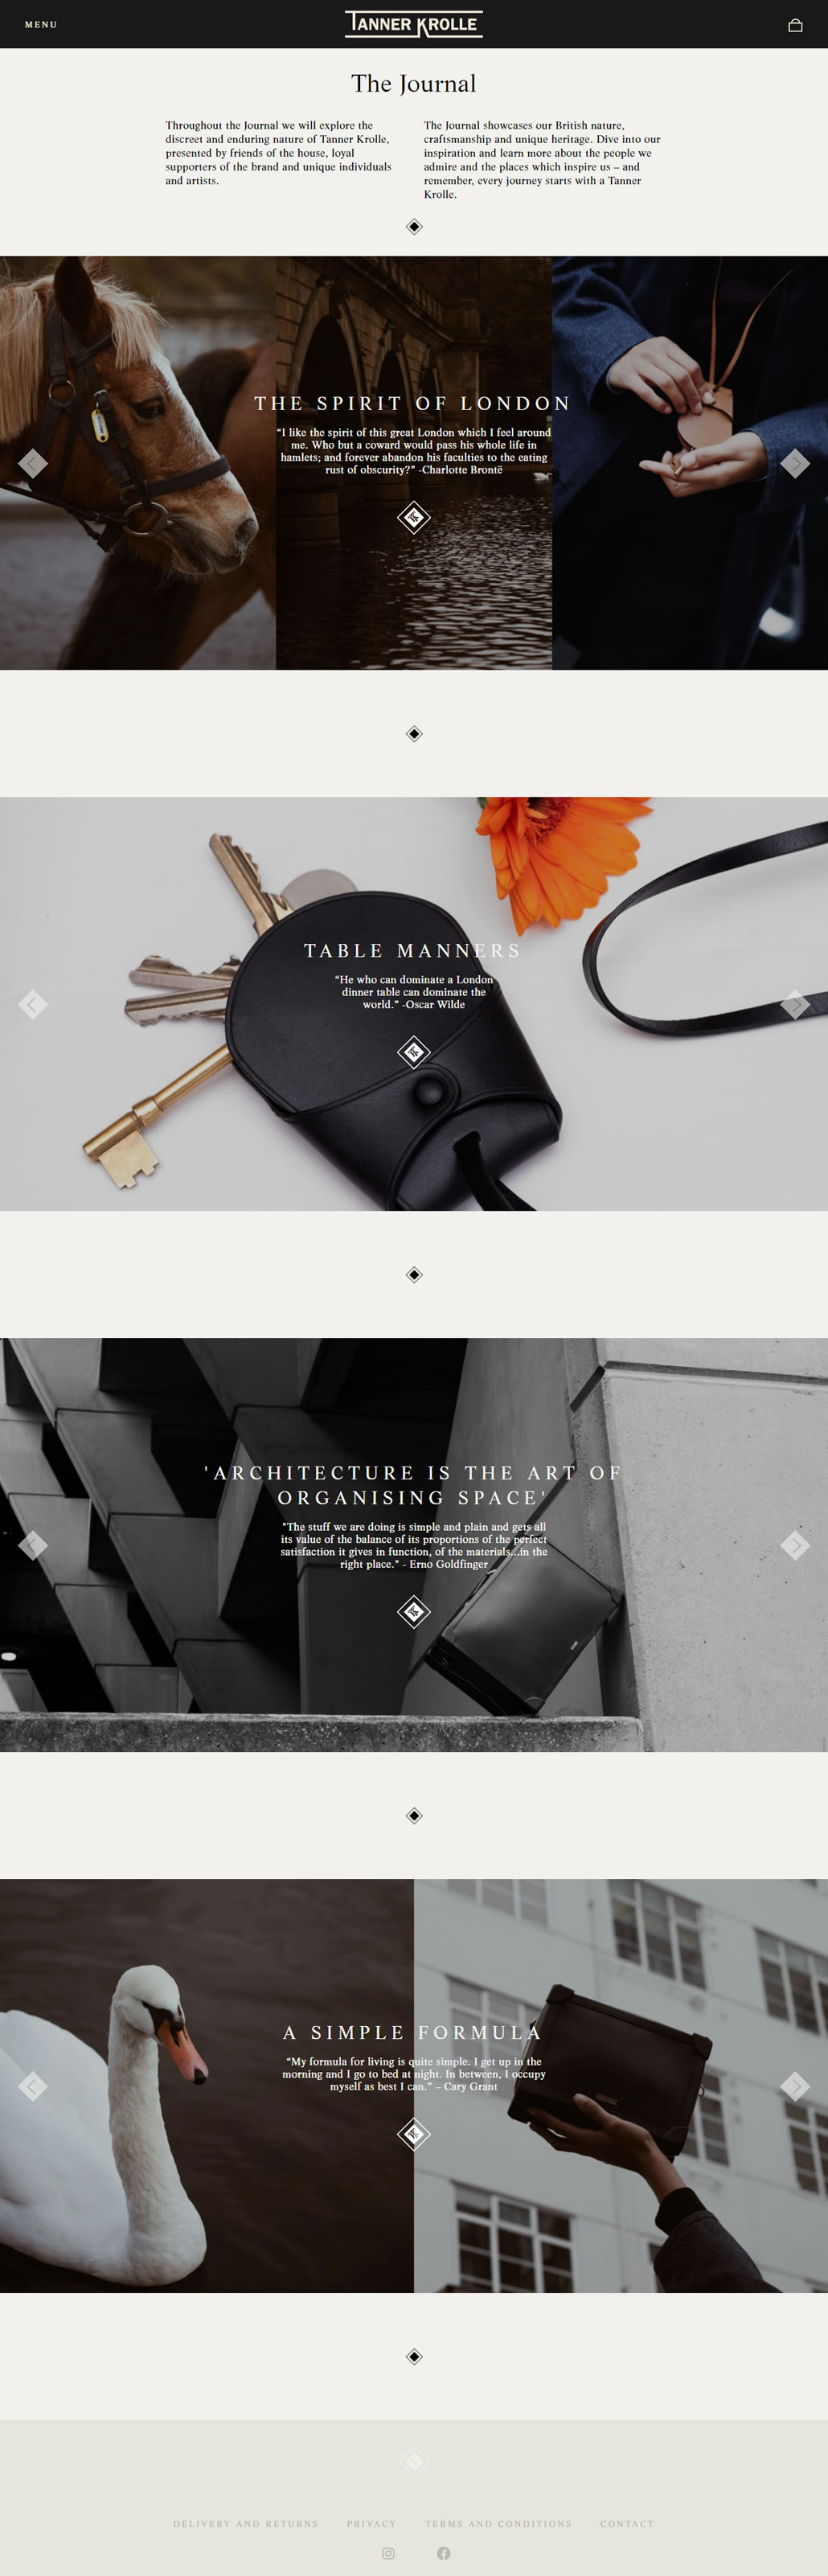 Tanner Krolle built using Shopify, web design by Convoy Media